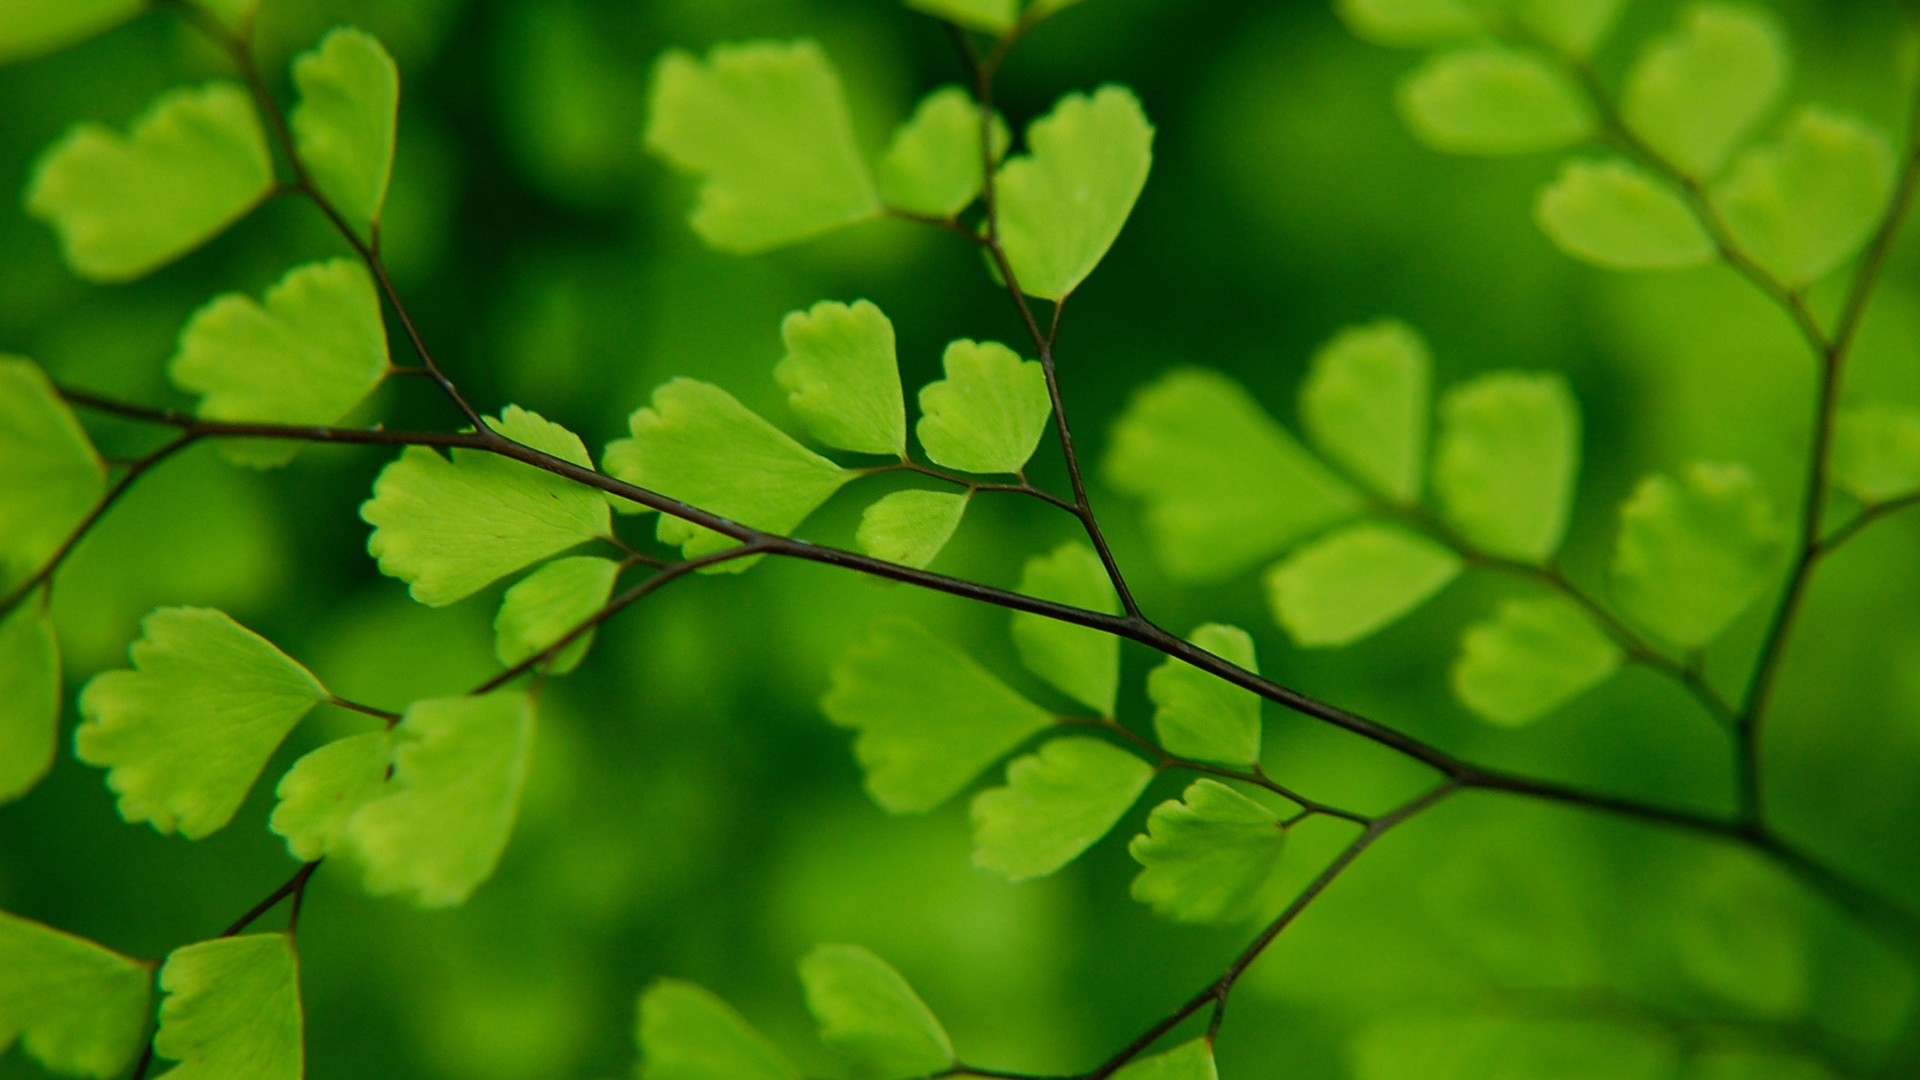 Free Download Green Leaves Wallpaper Green Leaves Hd